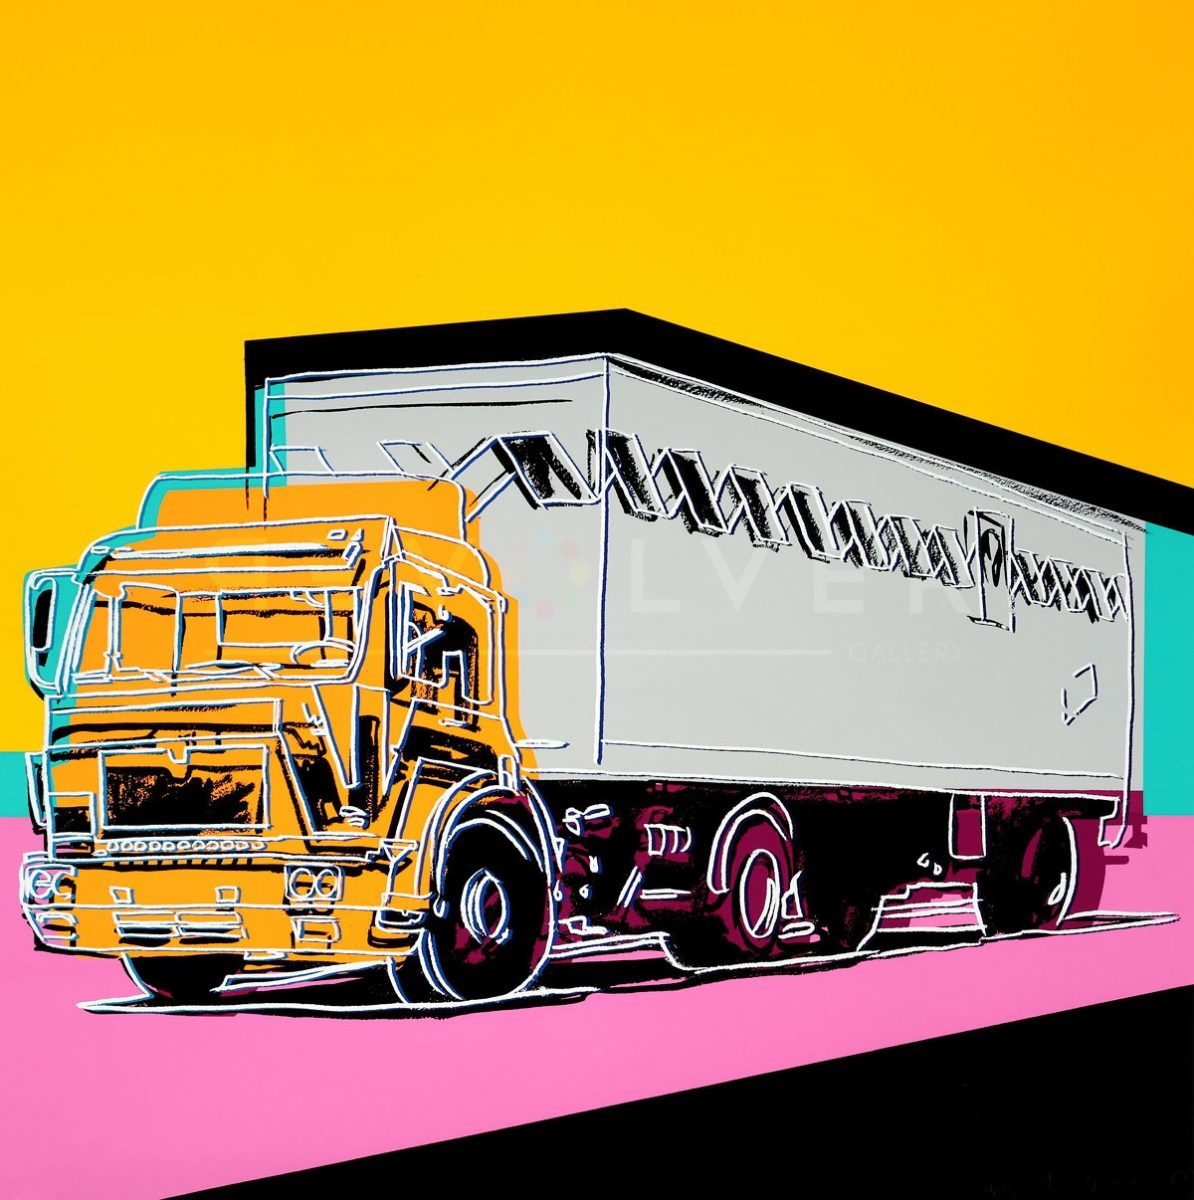 Andy Warhol's screenprint Truck 367